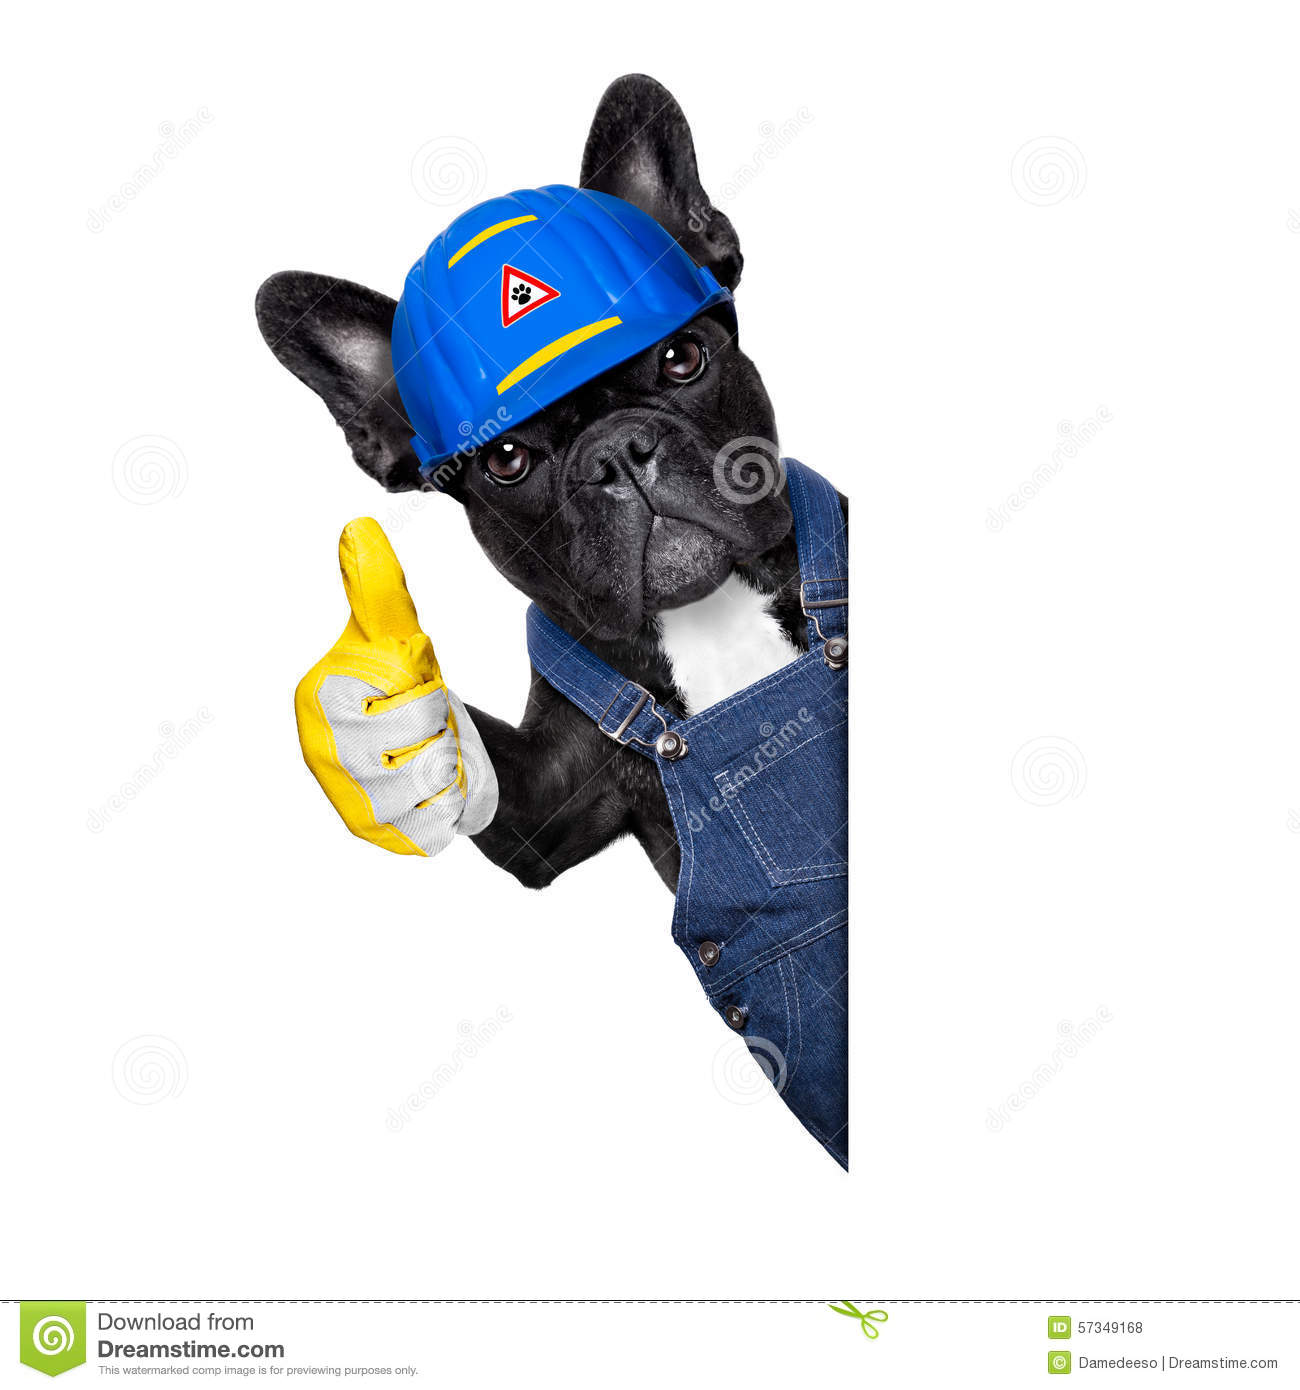 Handyman Dog Stock Photo. Image Of Construction, Housing